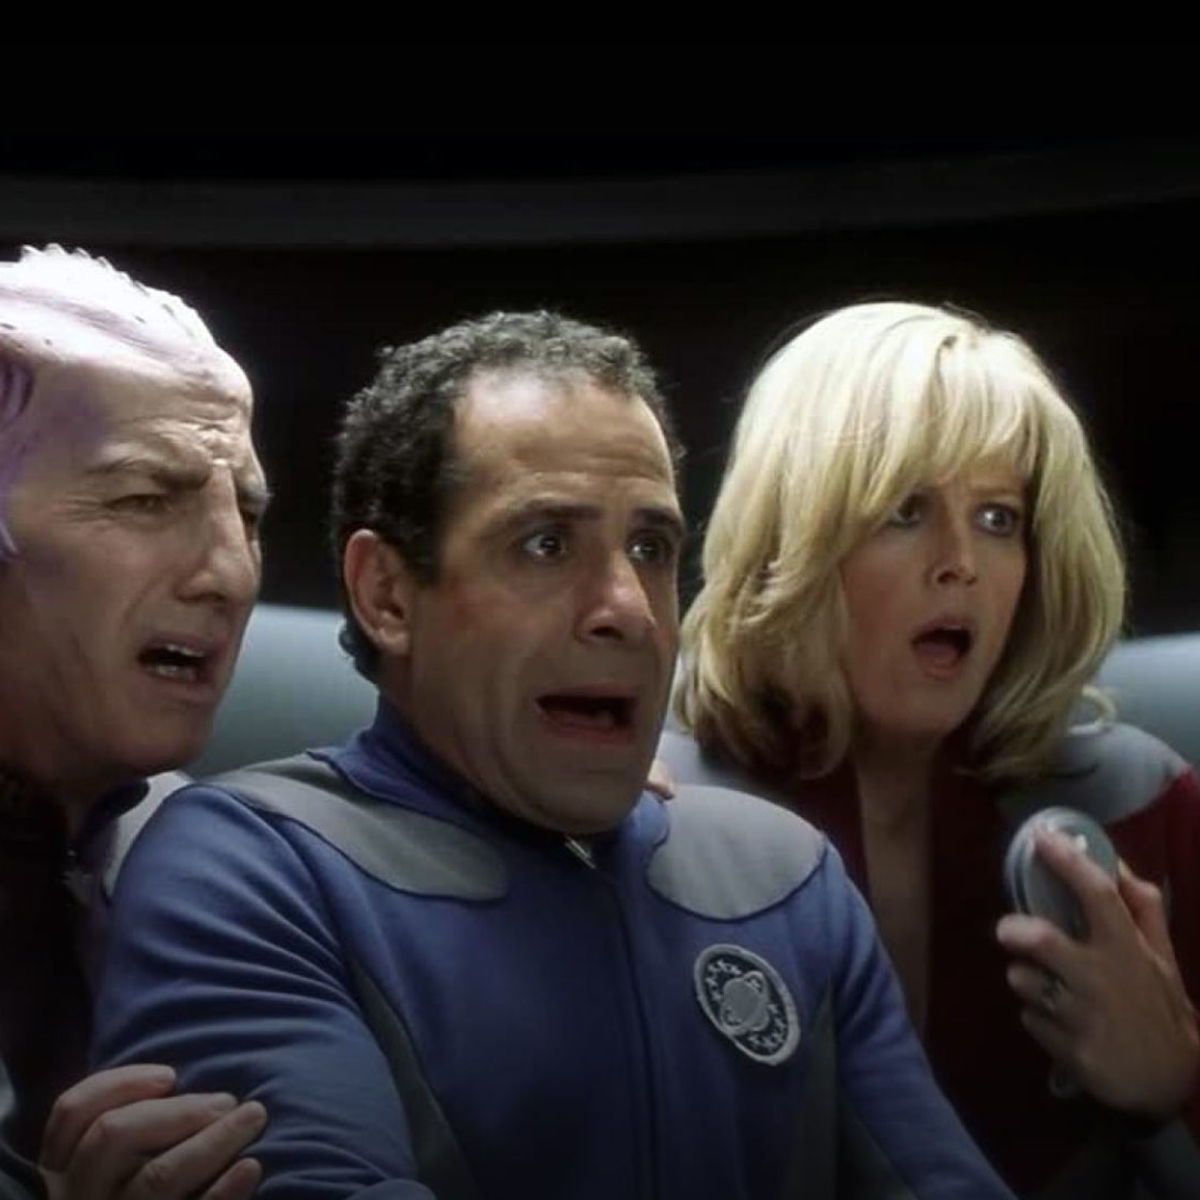 GalaxyQuest_hero_movie.jpg